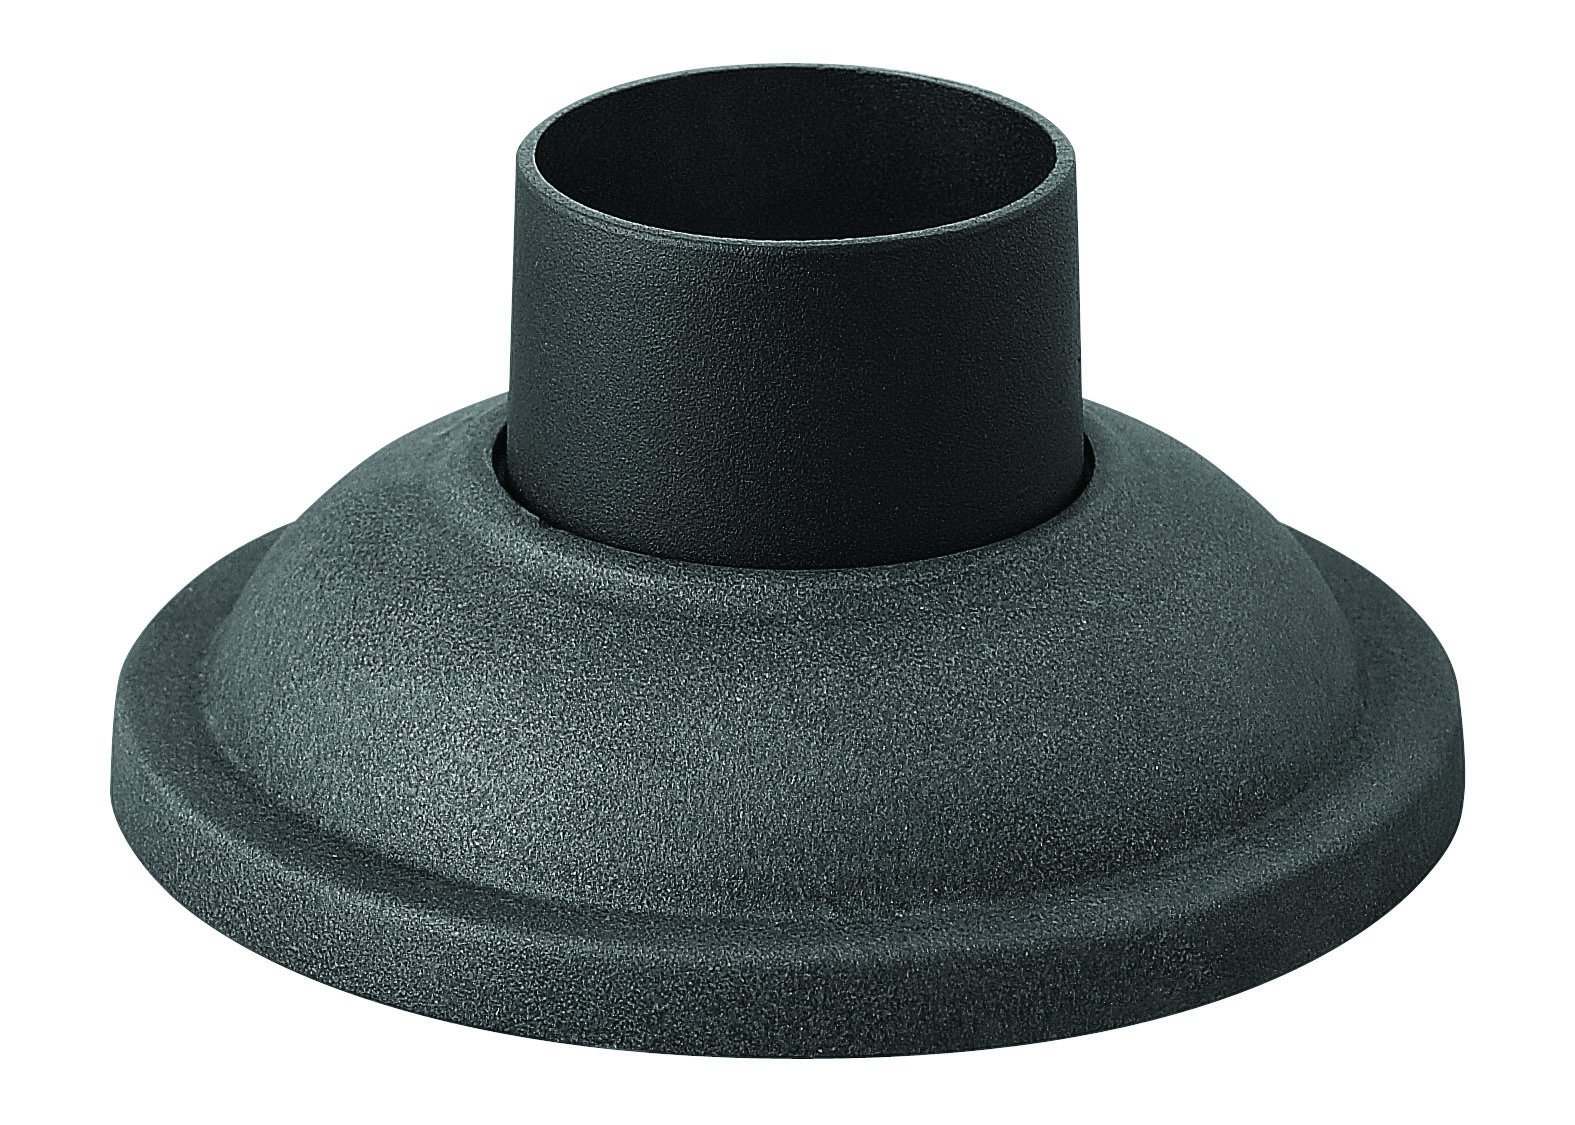 Hinkley 1304DZ Traditional Pier Mount from Pier Mount collection in Grayfinish,